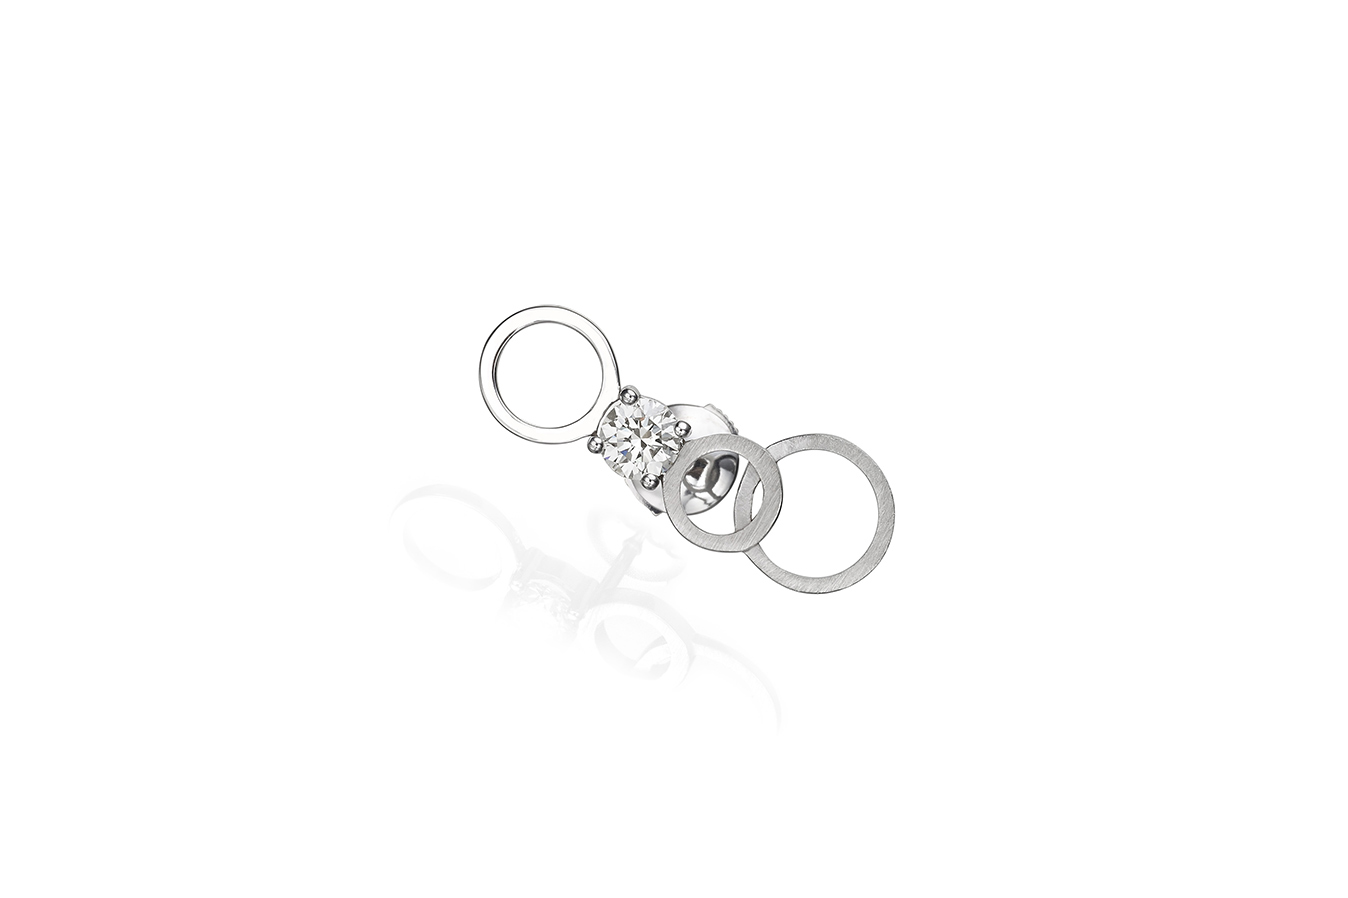 CIRCULAR A EARRING 18K WHITE GOLD 0.30 CT DIAMOND